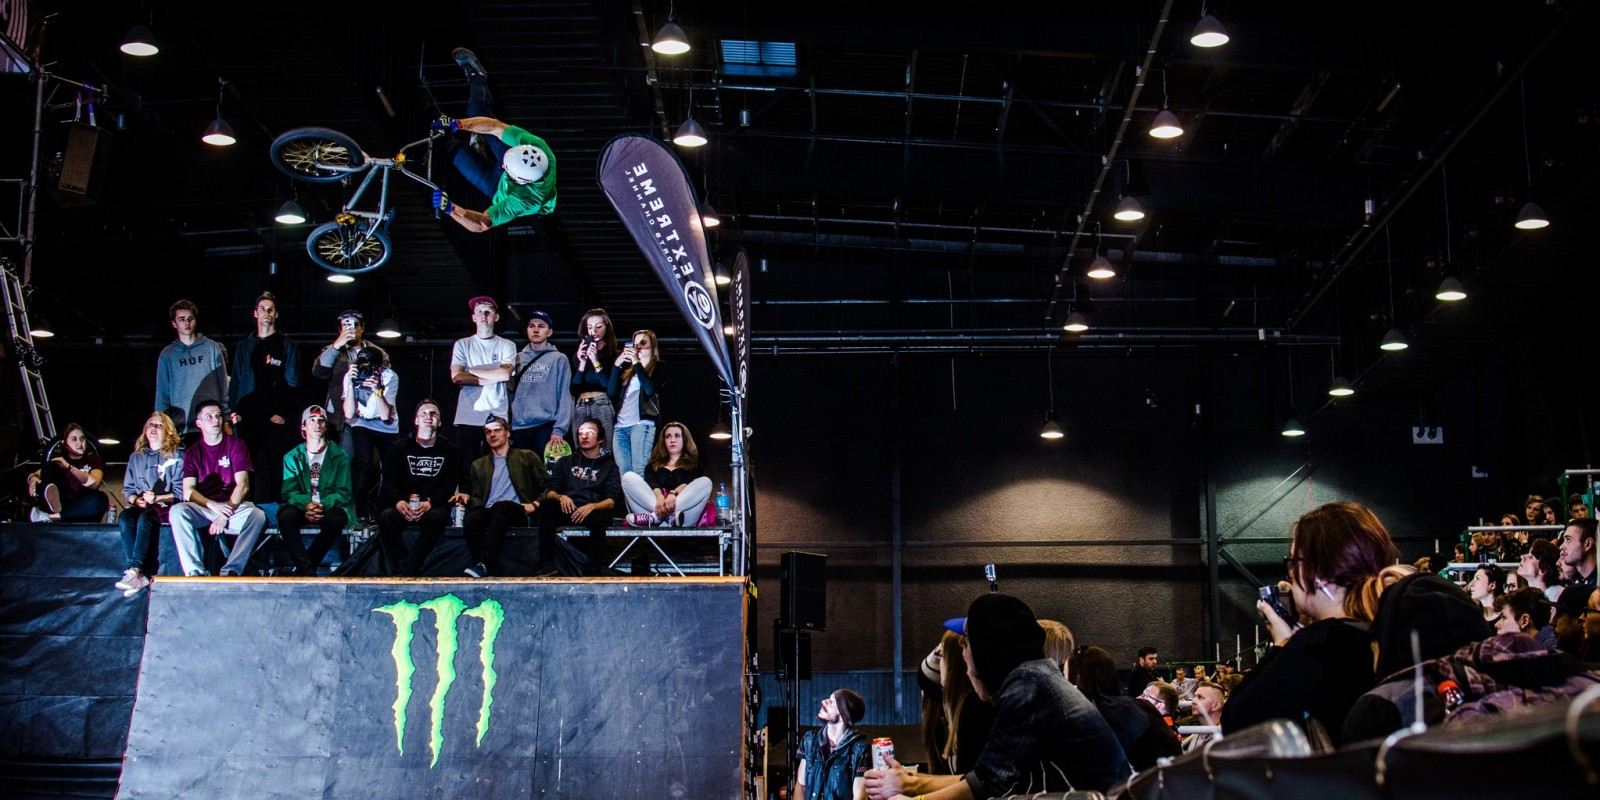 Monster Energy at the 2015 Baltic Games Indoor Edition in Amber Expo, Gdansk, Poland